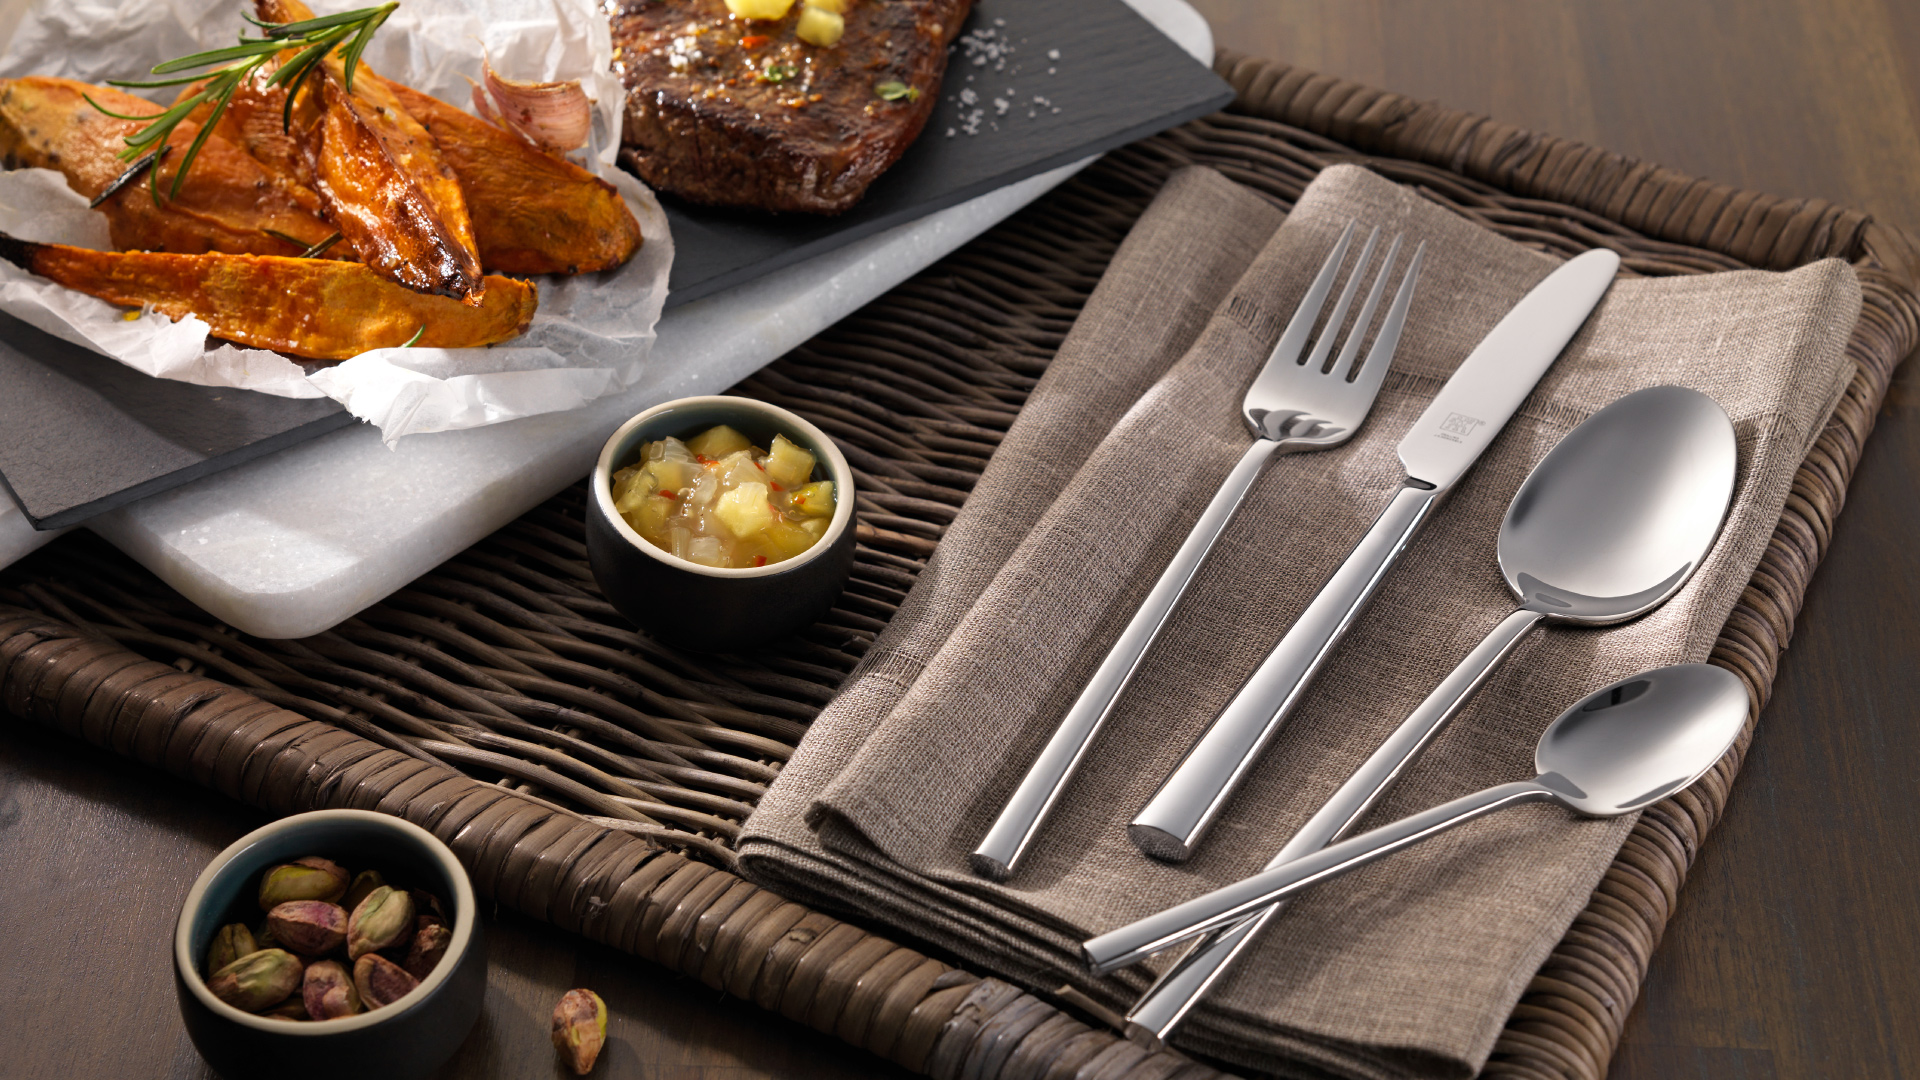 Sweet potato and Zwilling cutlery